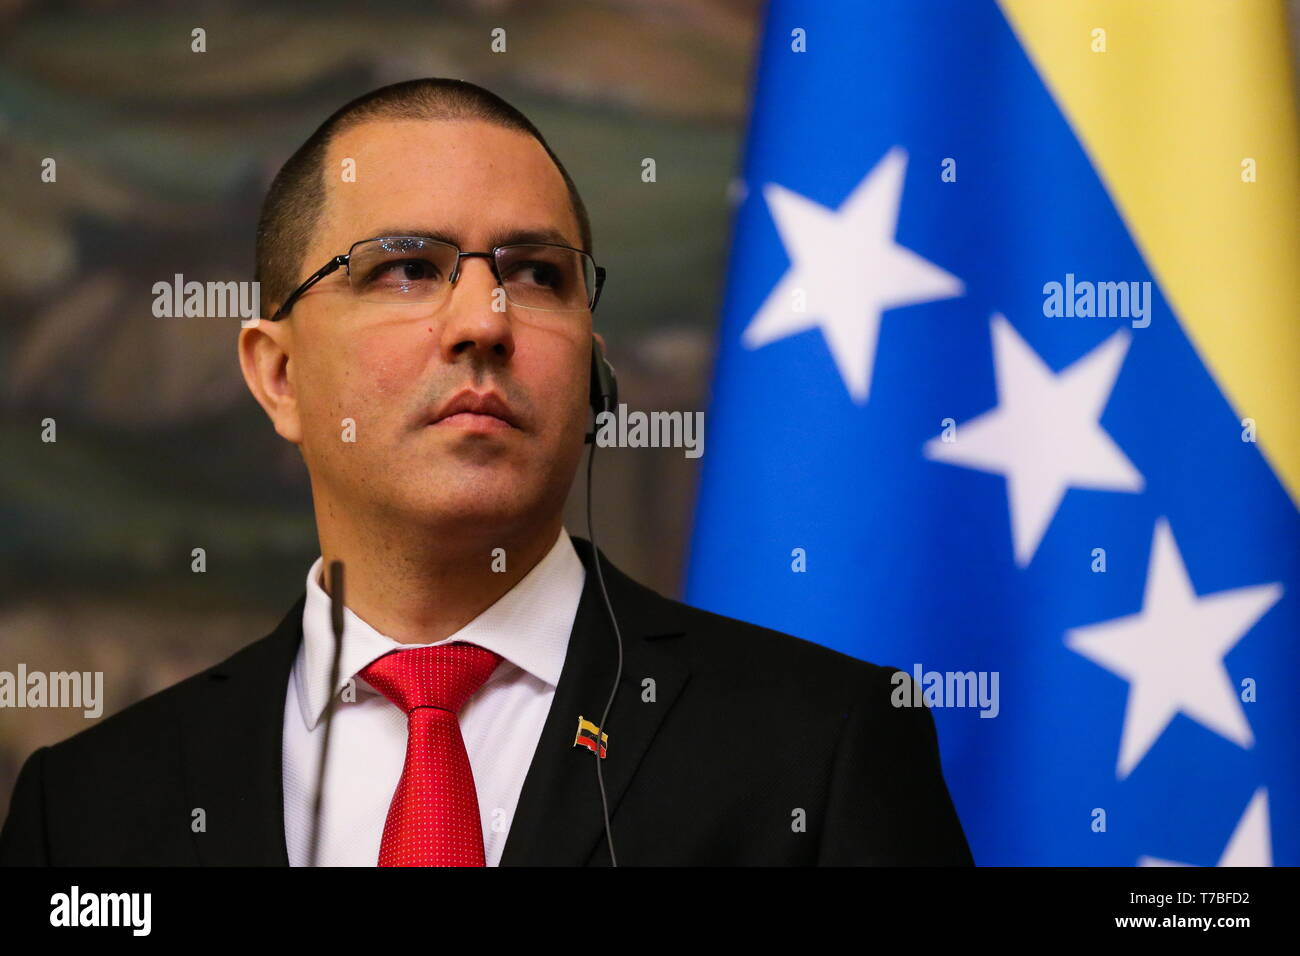 Moscow, Russia. 05th May, 2019. MOSCOW, RUSSIA - MAY 5, 2019: The Foreign Minister of the Bolivarian Republic of Venezuela Jorge Arreaza at a joint press conference after a meeting with Russia's minister of foreign affairs at the Reception House of the Ministry of Foreign Affairs of Russia. Vladimir Gerdo/TASS Credit: ITAR-TASS News Agency/Alamy Live News - Stock Image